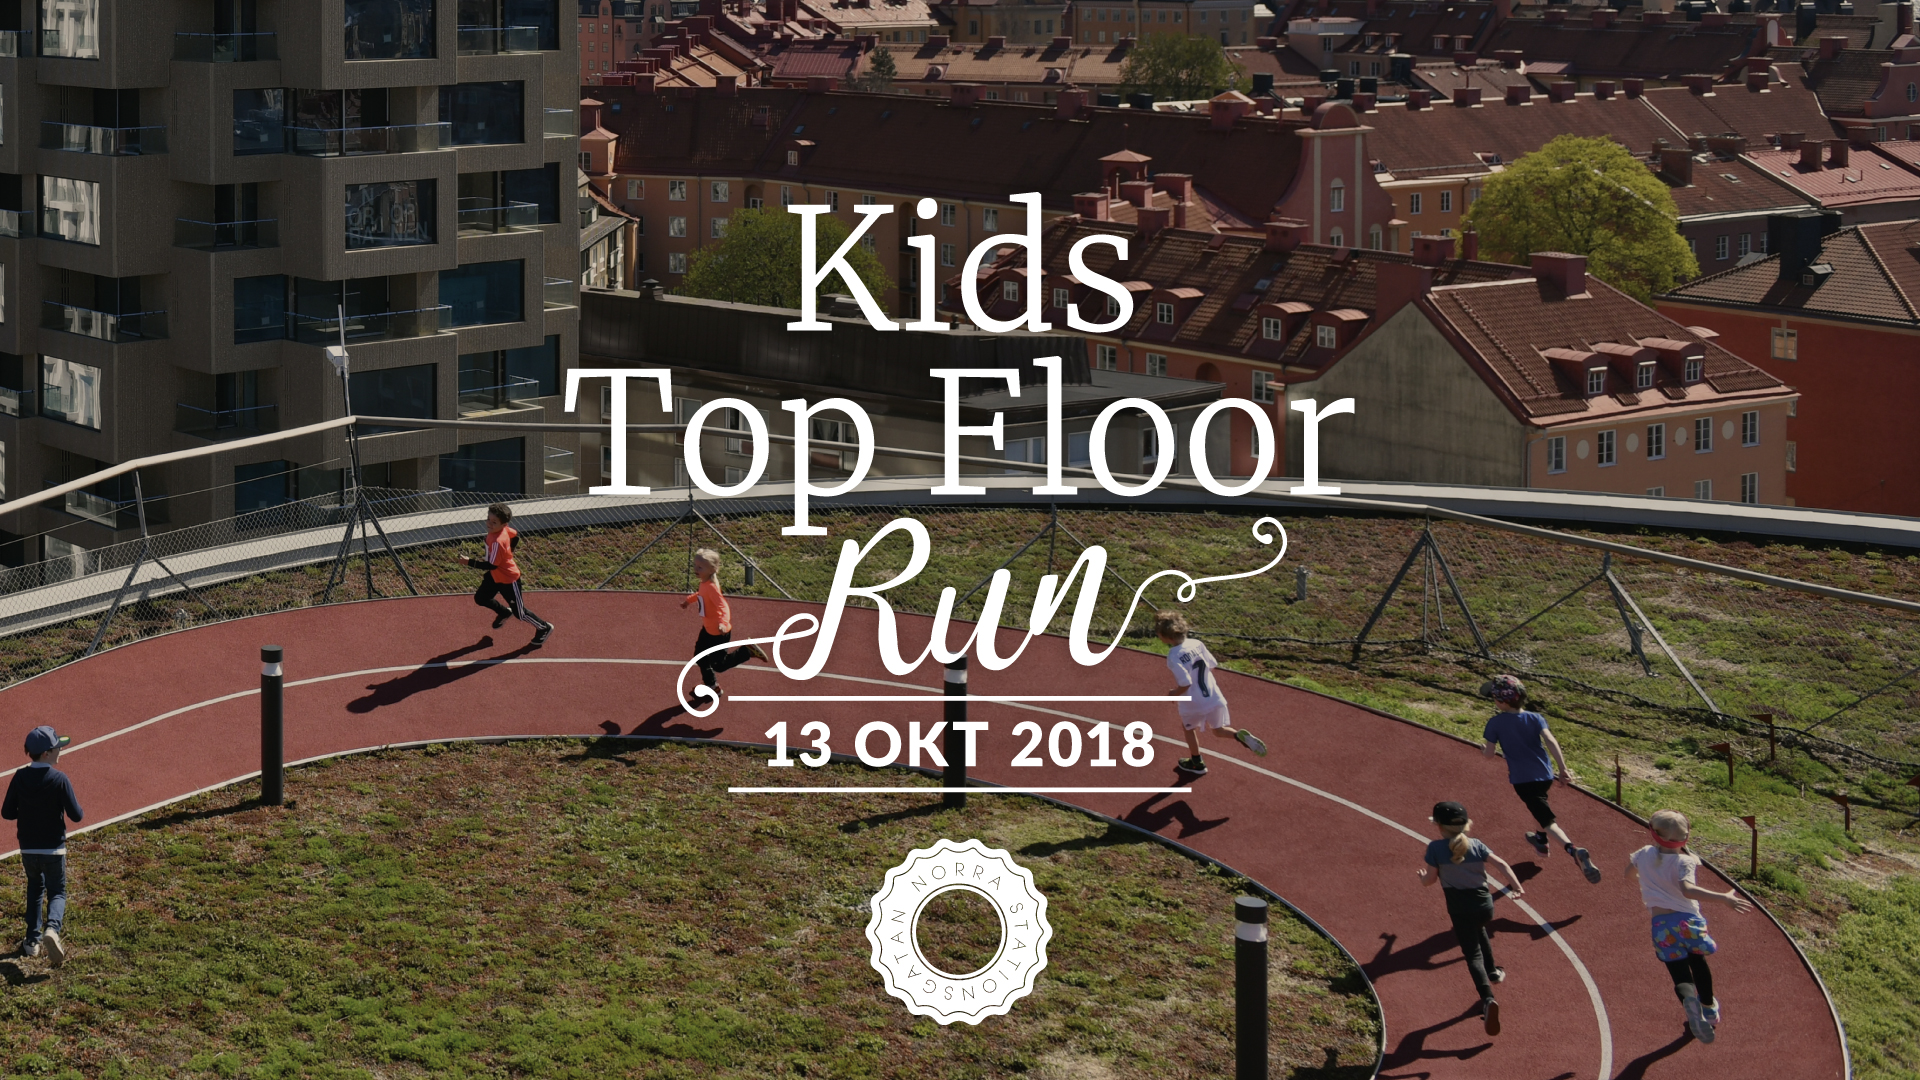 Kids-Top-Floor-Run-Okt-2018-1920x1080px-1 (kopia)-resize-jpg-1920px.jpg